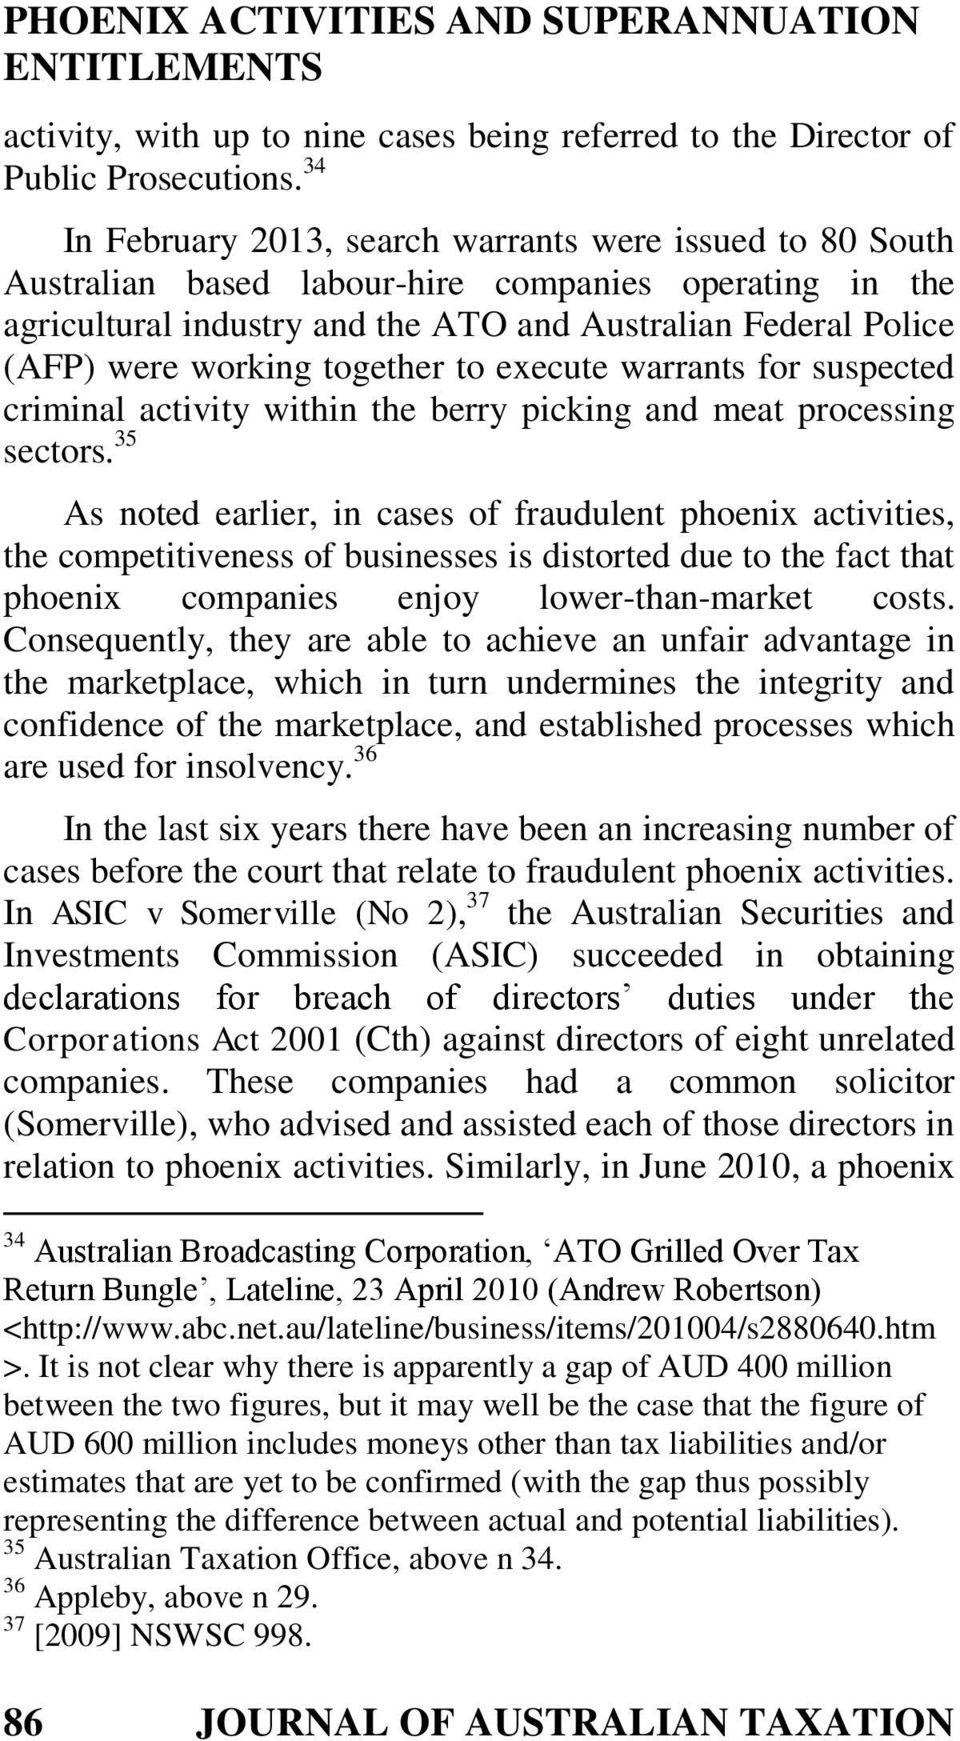 together to execute warrants for suspected criminal activity within the berry picking and meat processing sectors.